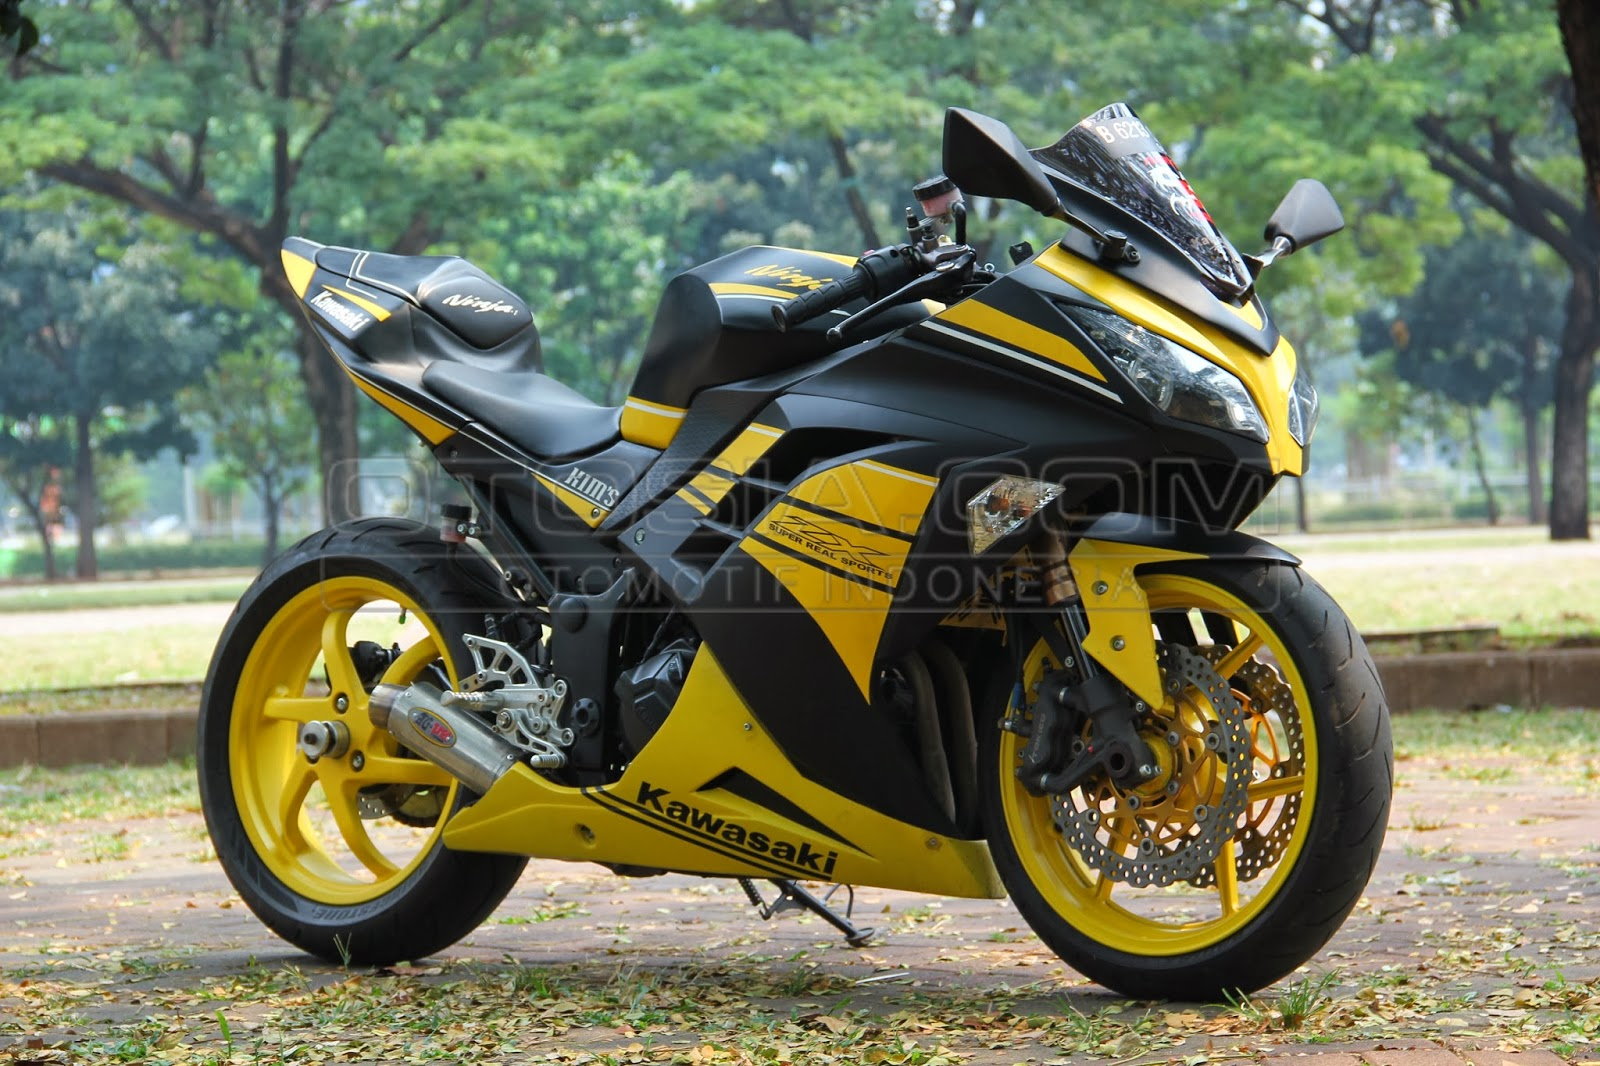 New Ninja Fi Modif Racing Look Release Reviews And Models On